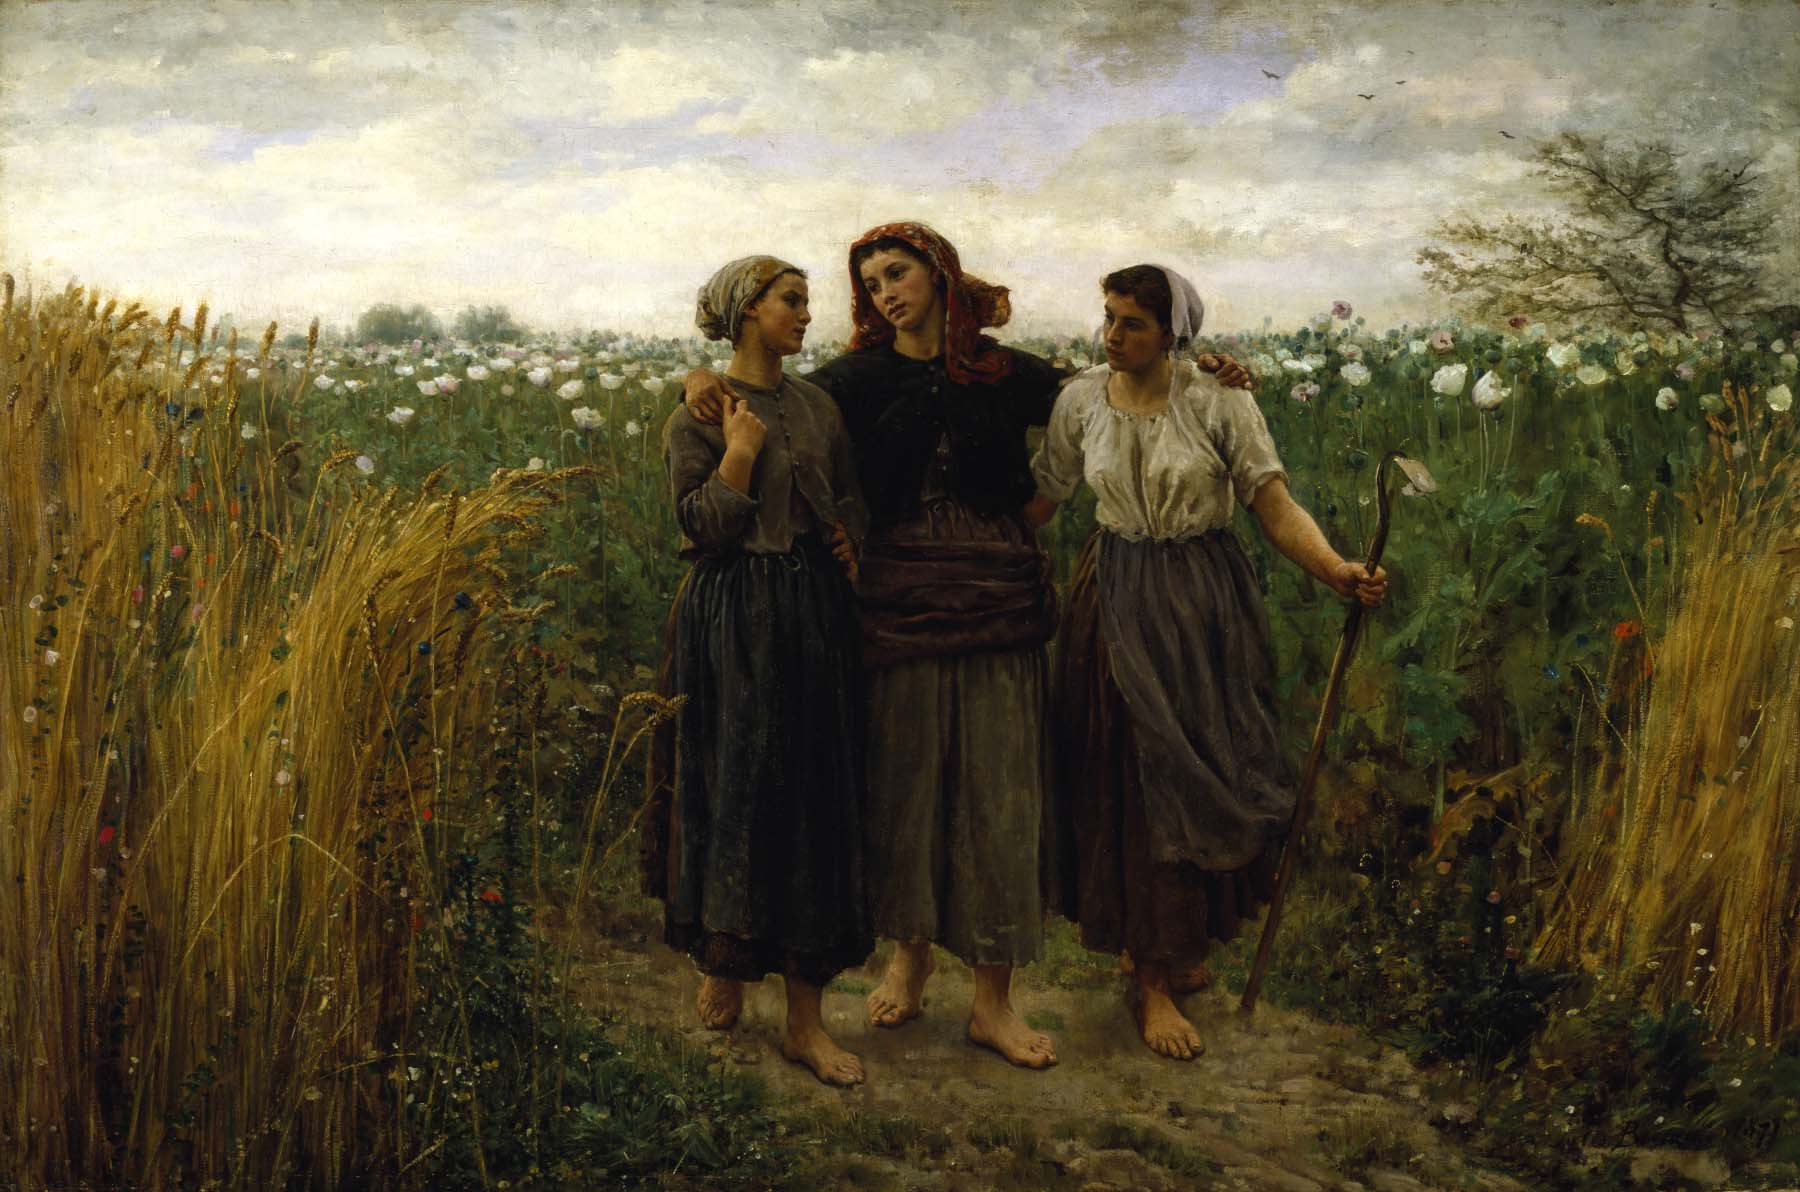 Jules Adolphe Aimé Louis Breton, Returning from the Fields, 1871